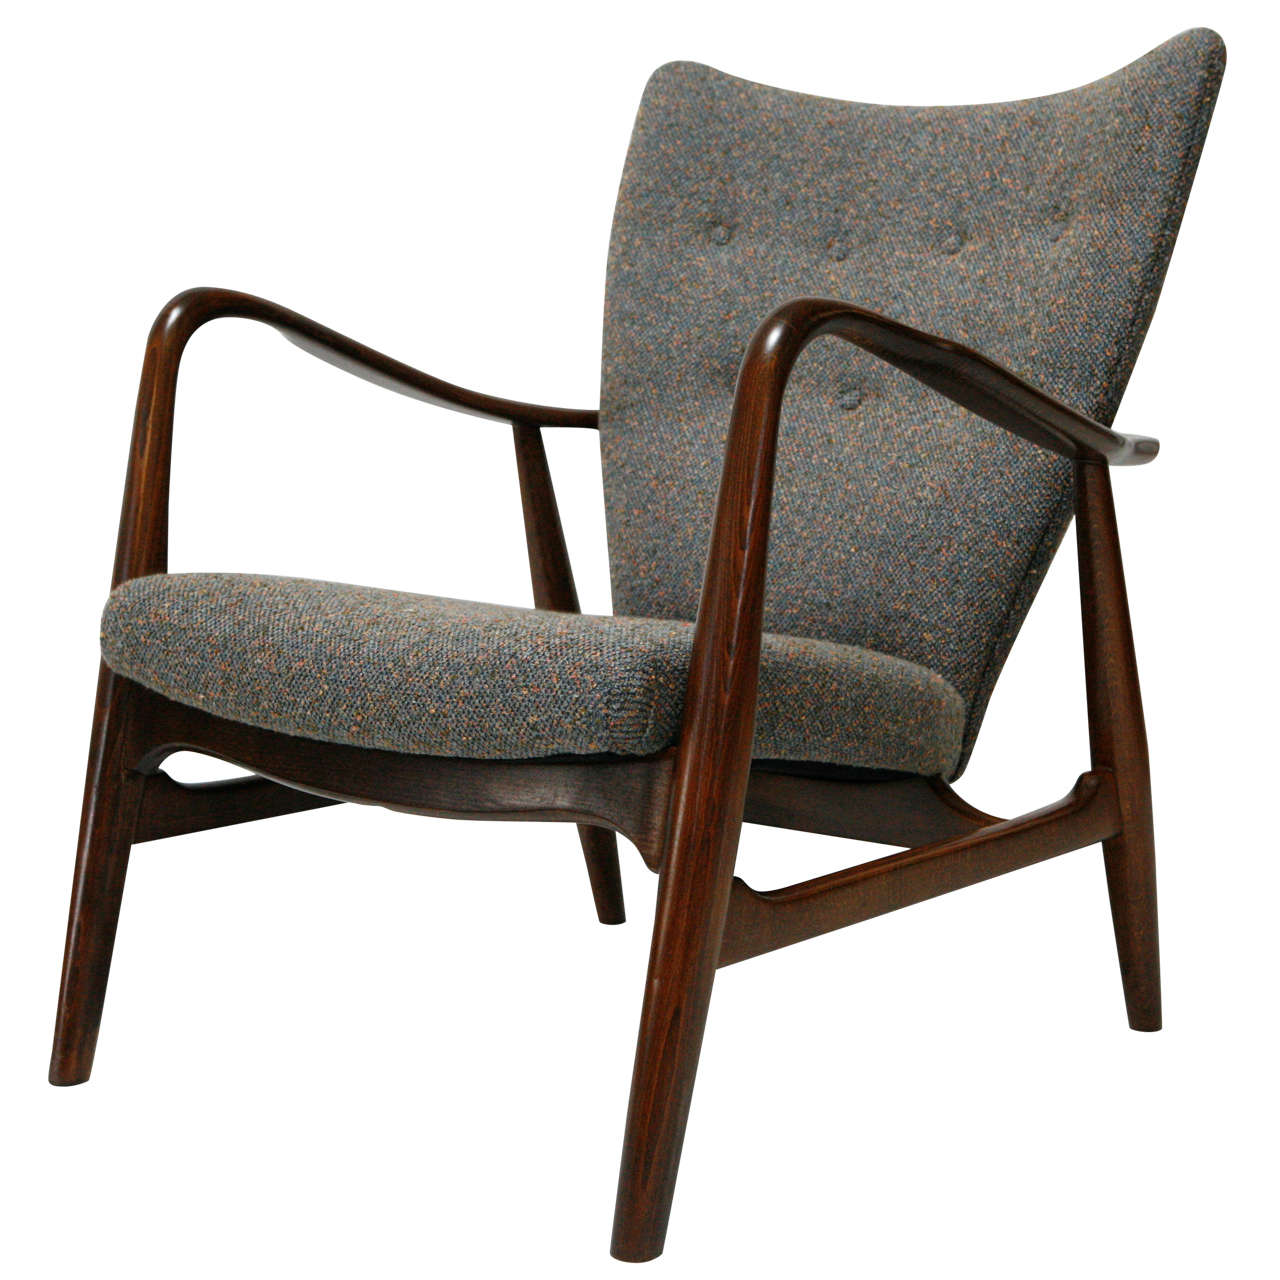 Image of: Simple Danish Lounge Chair